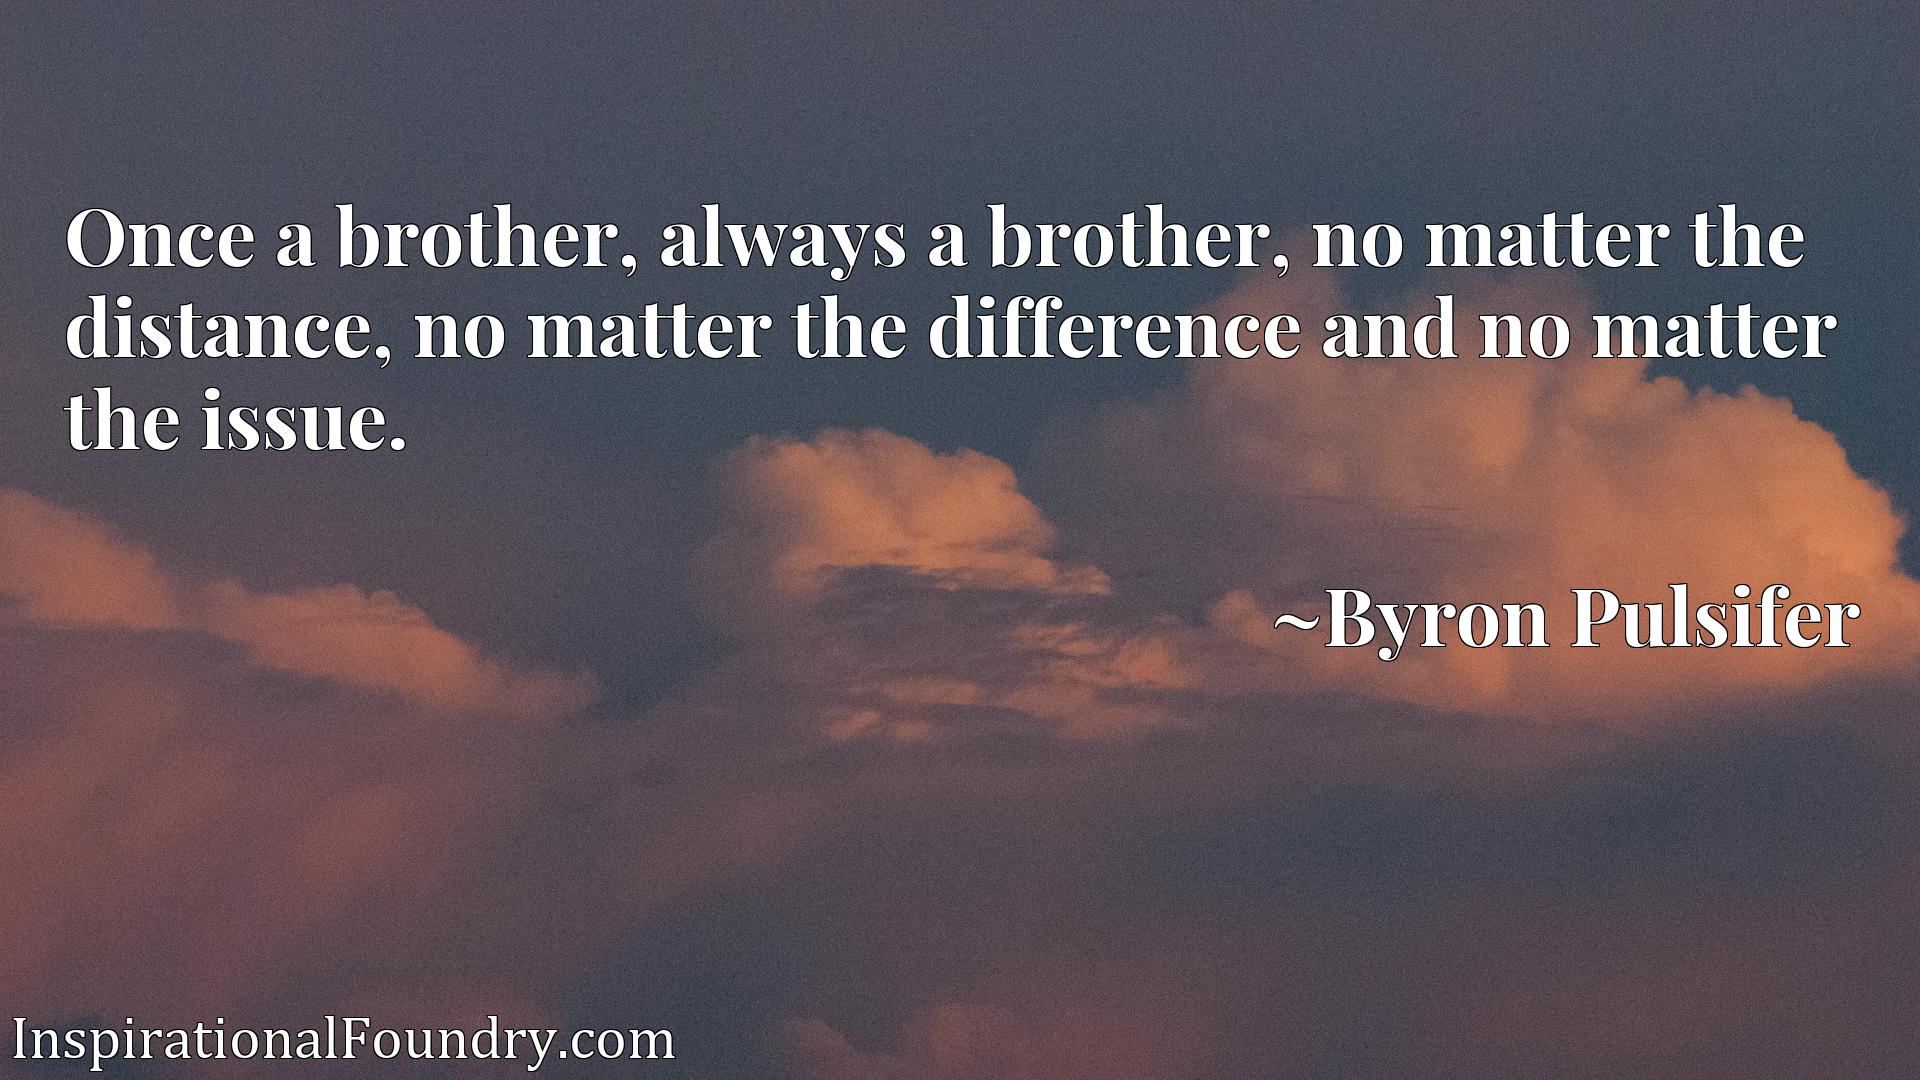 Once a brother, always a brother, no matter the distance, no matter the difference and no matter the issue.